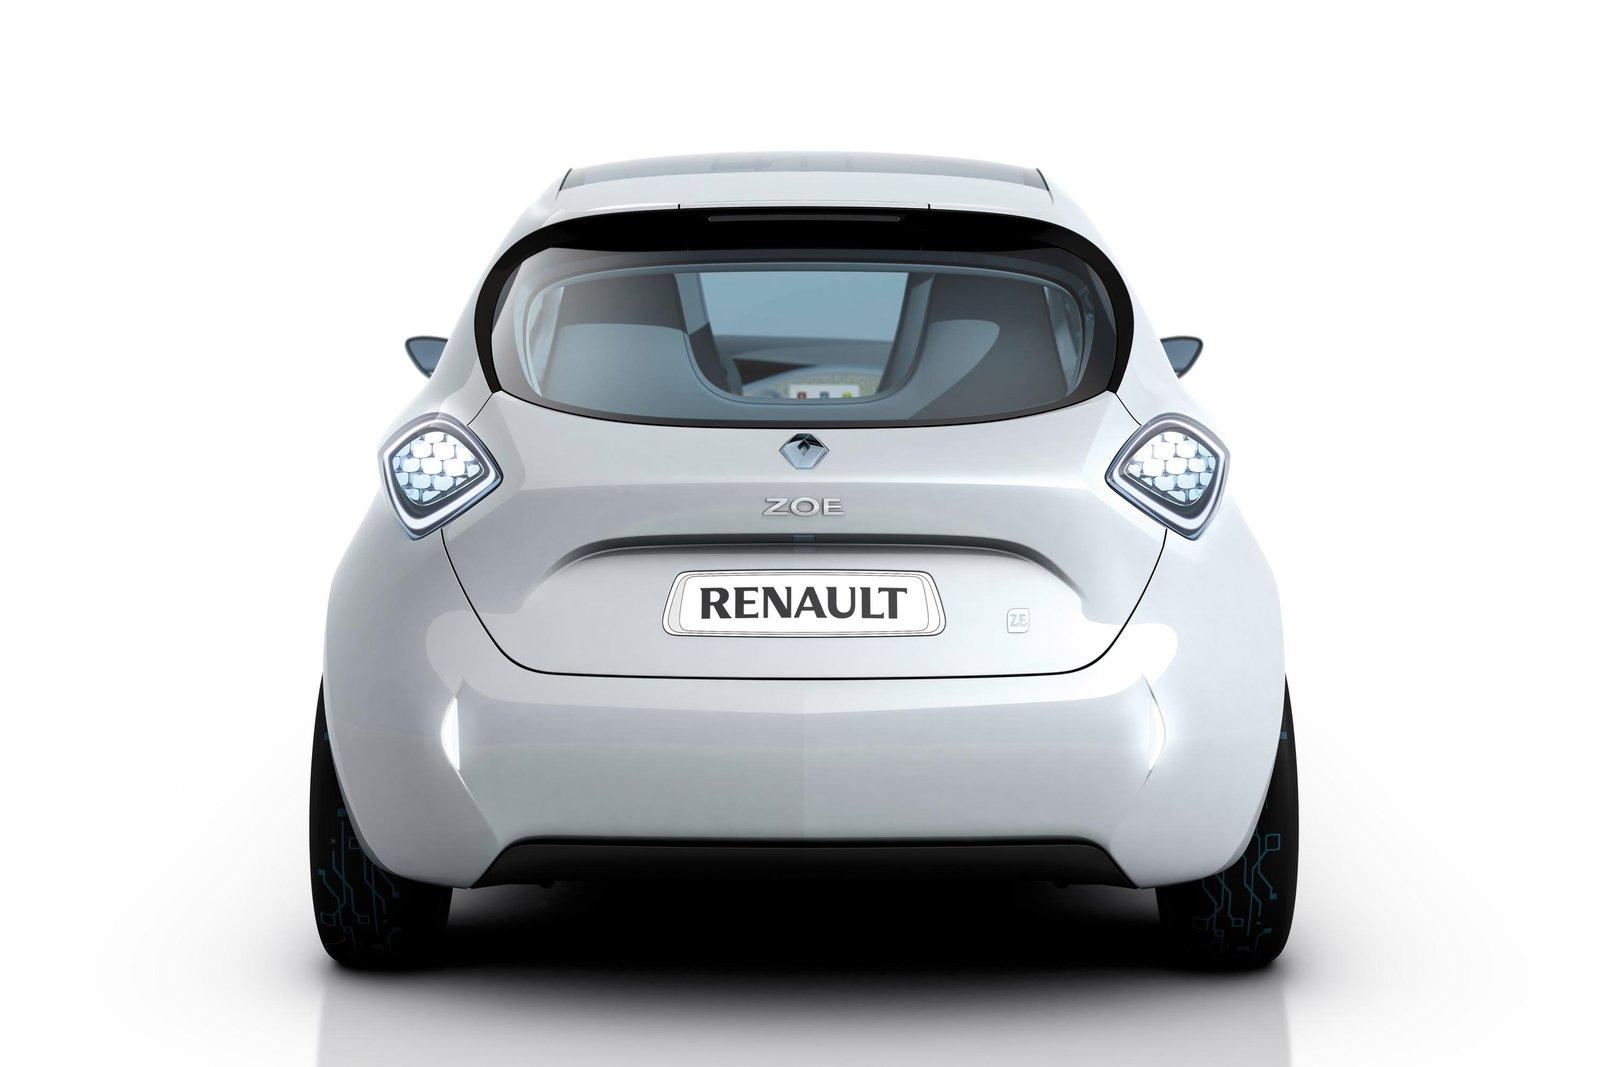 Renault Zoe Miles Only On Electricity